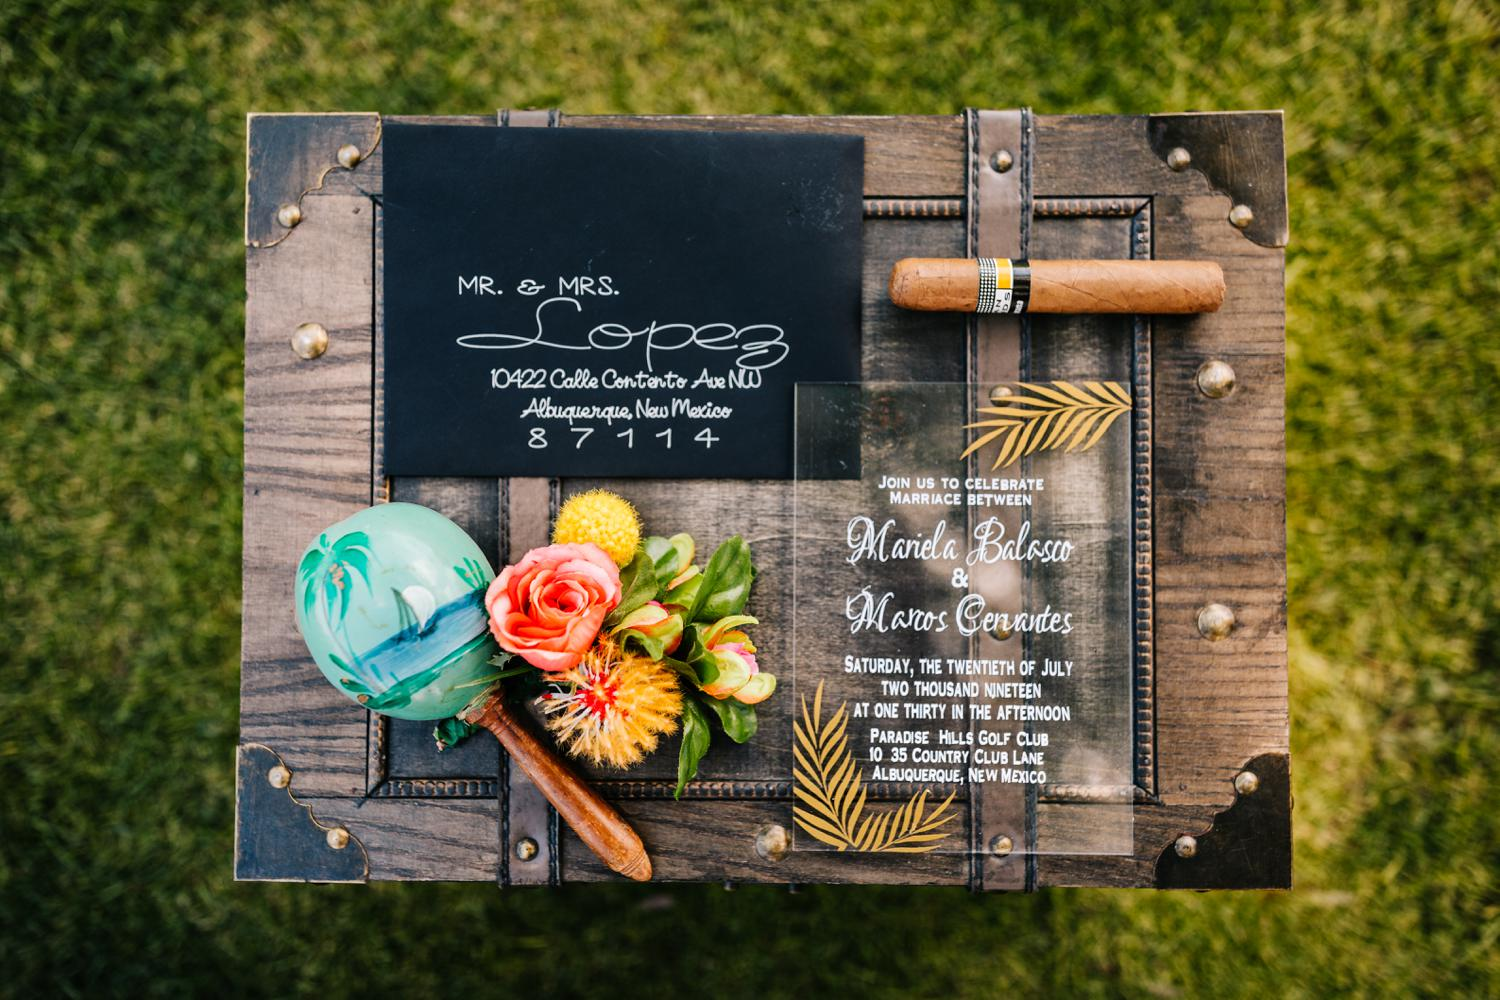 Invitation wedding suite with glass invitations, black envelope, and vivid colors